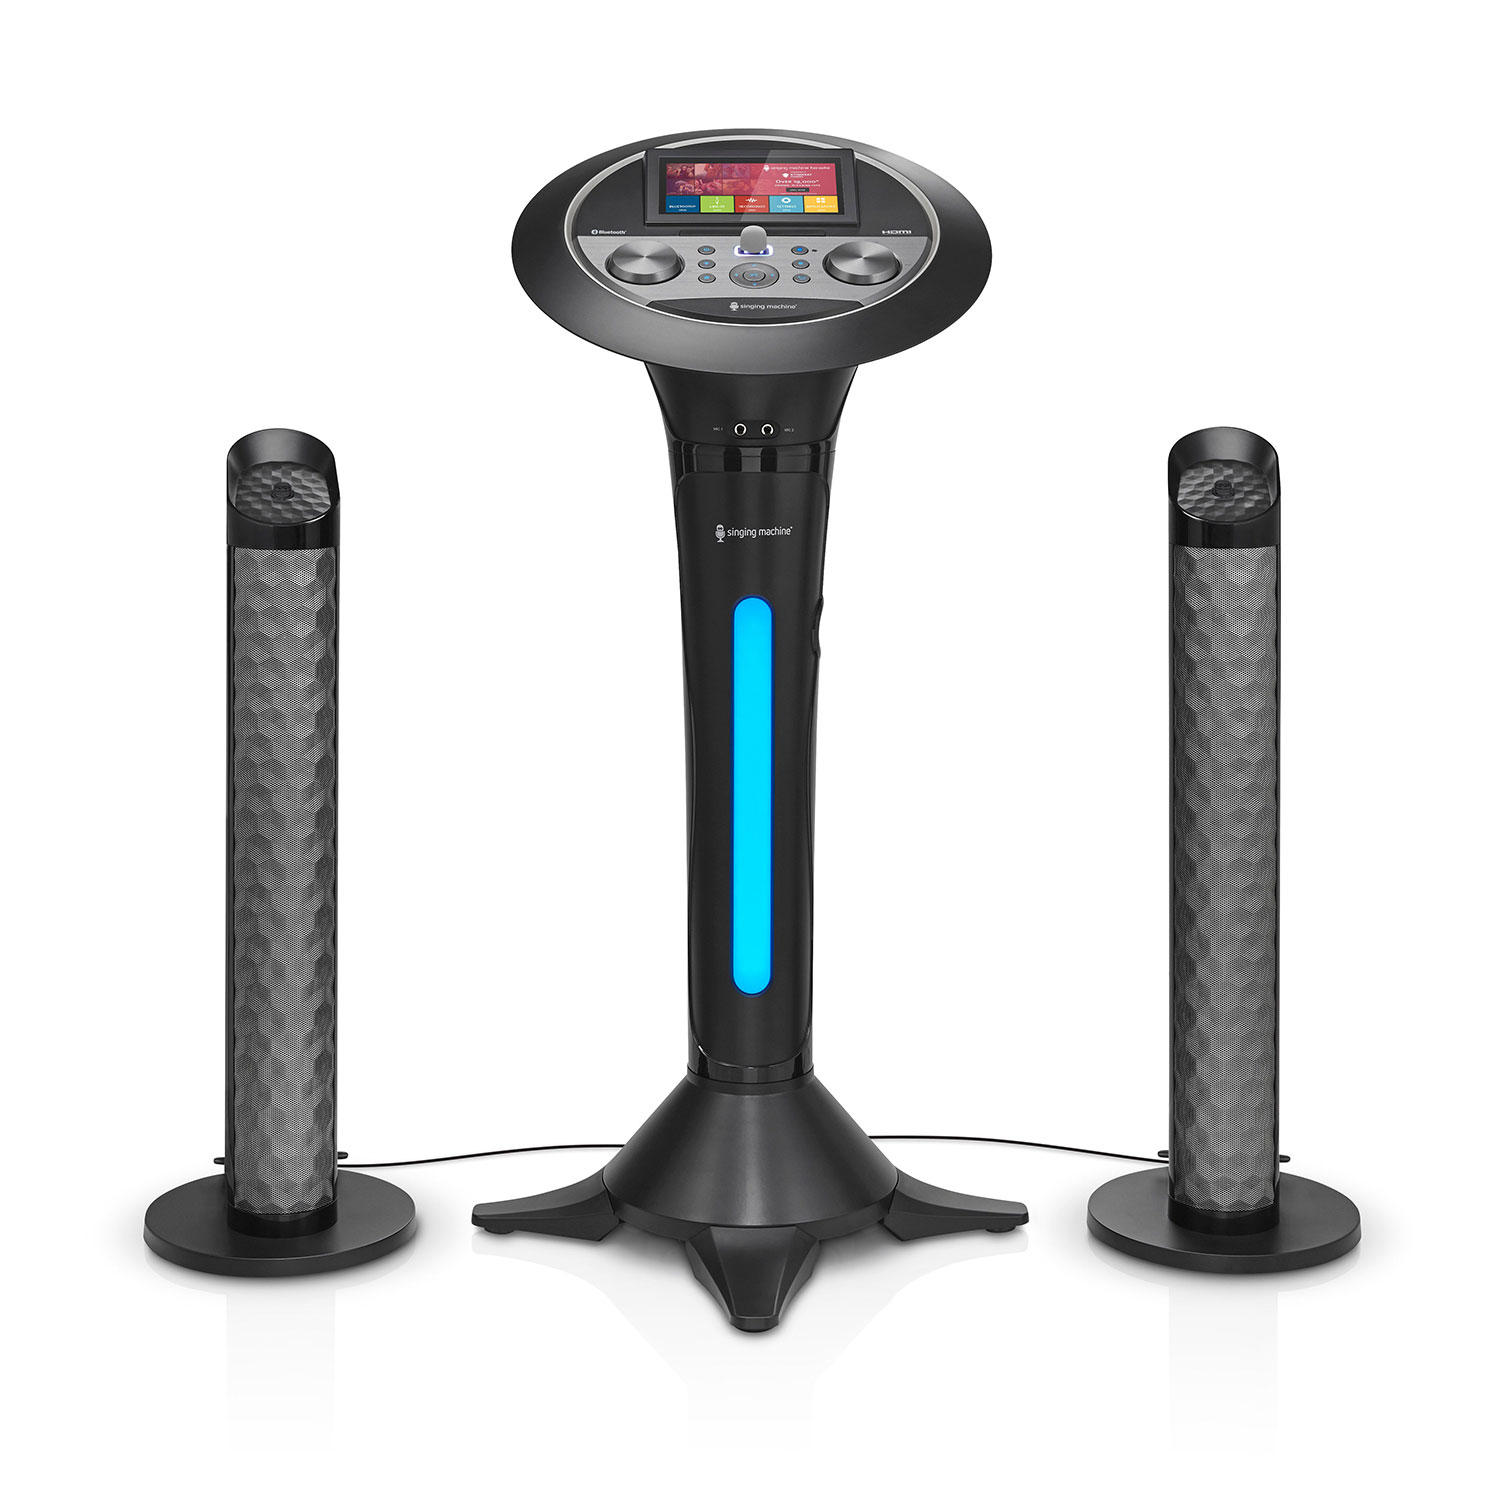 Singing Machine ISM1080 WiFi Pedestal Karaoke with 7